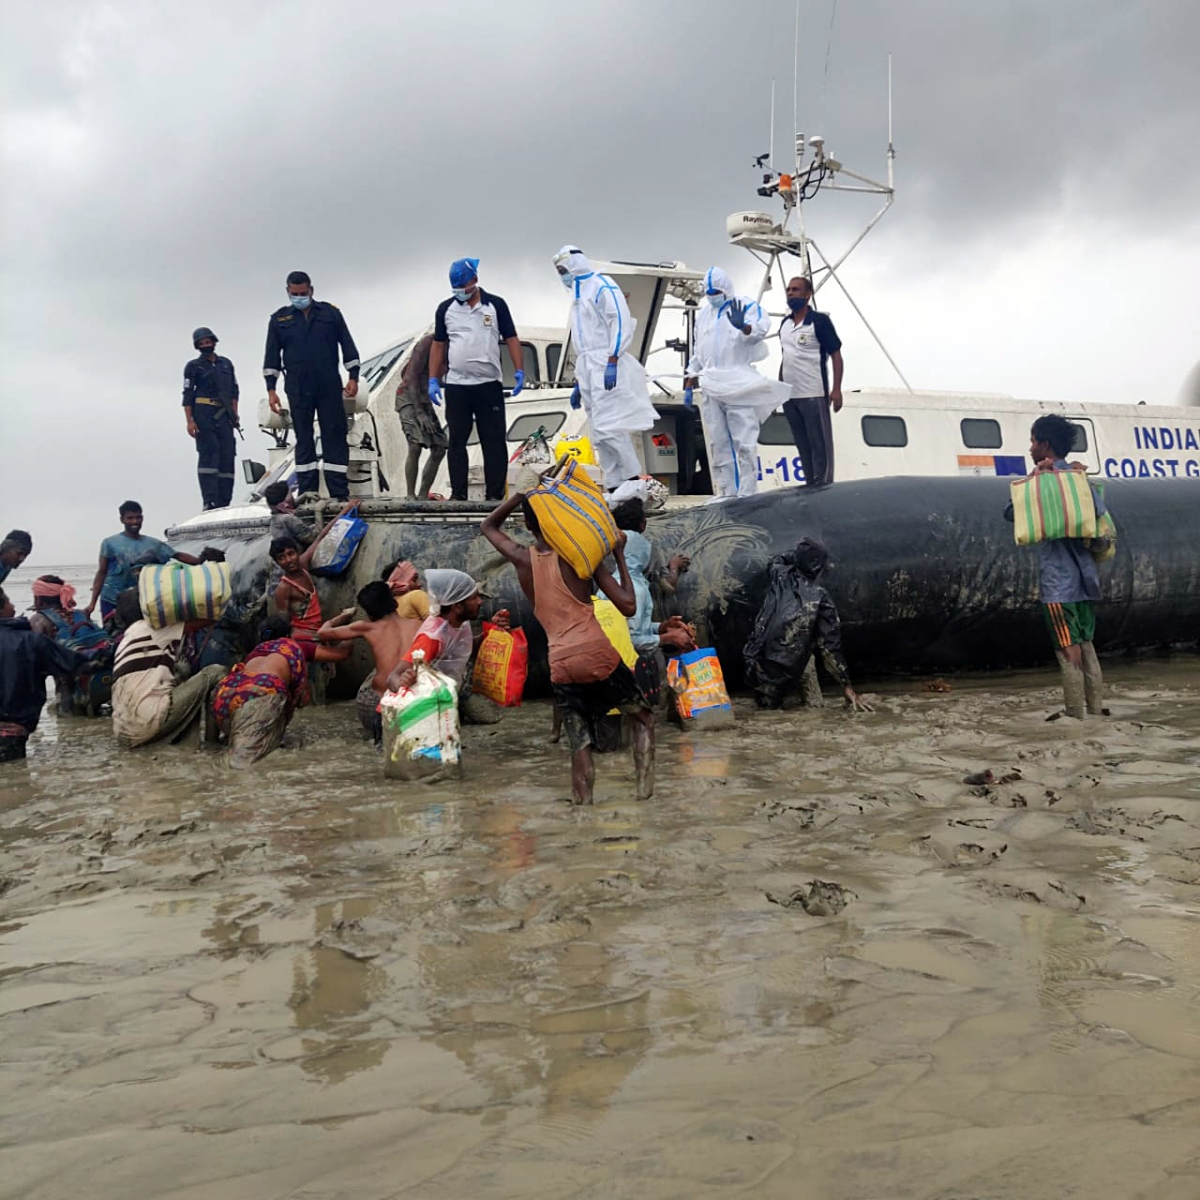 Indian Coast Guard personnel carried out a rescue operation after the landfall of Cyclone Yaas, in Bhubaneswar on Wednesday.